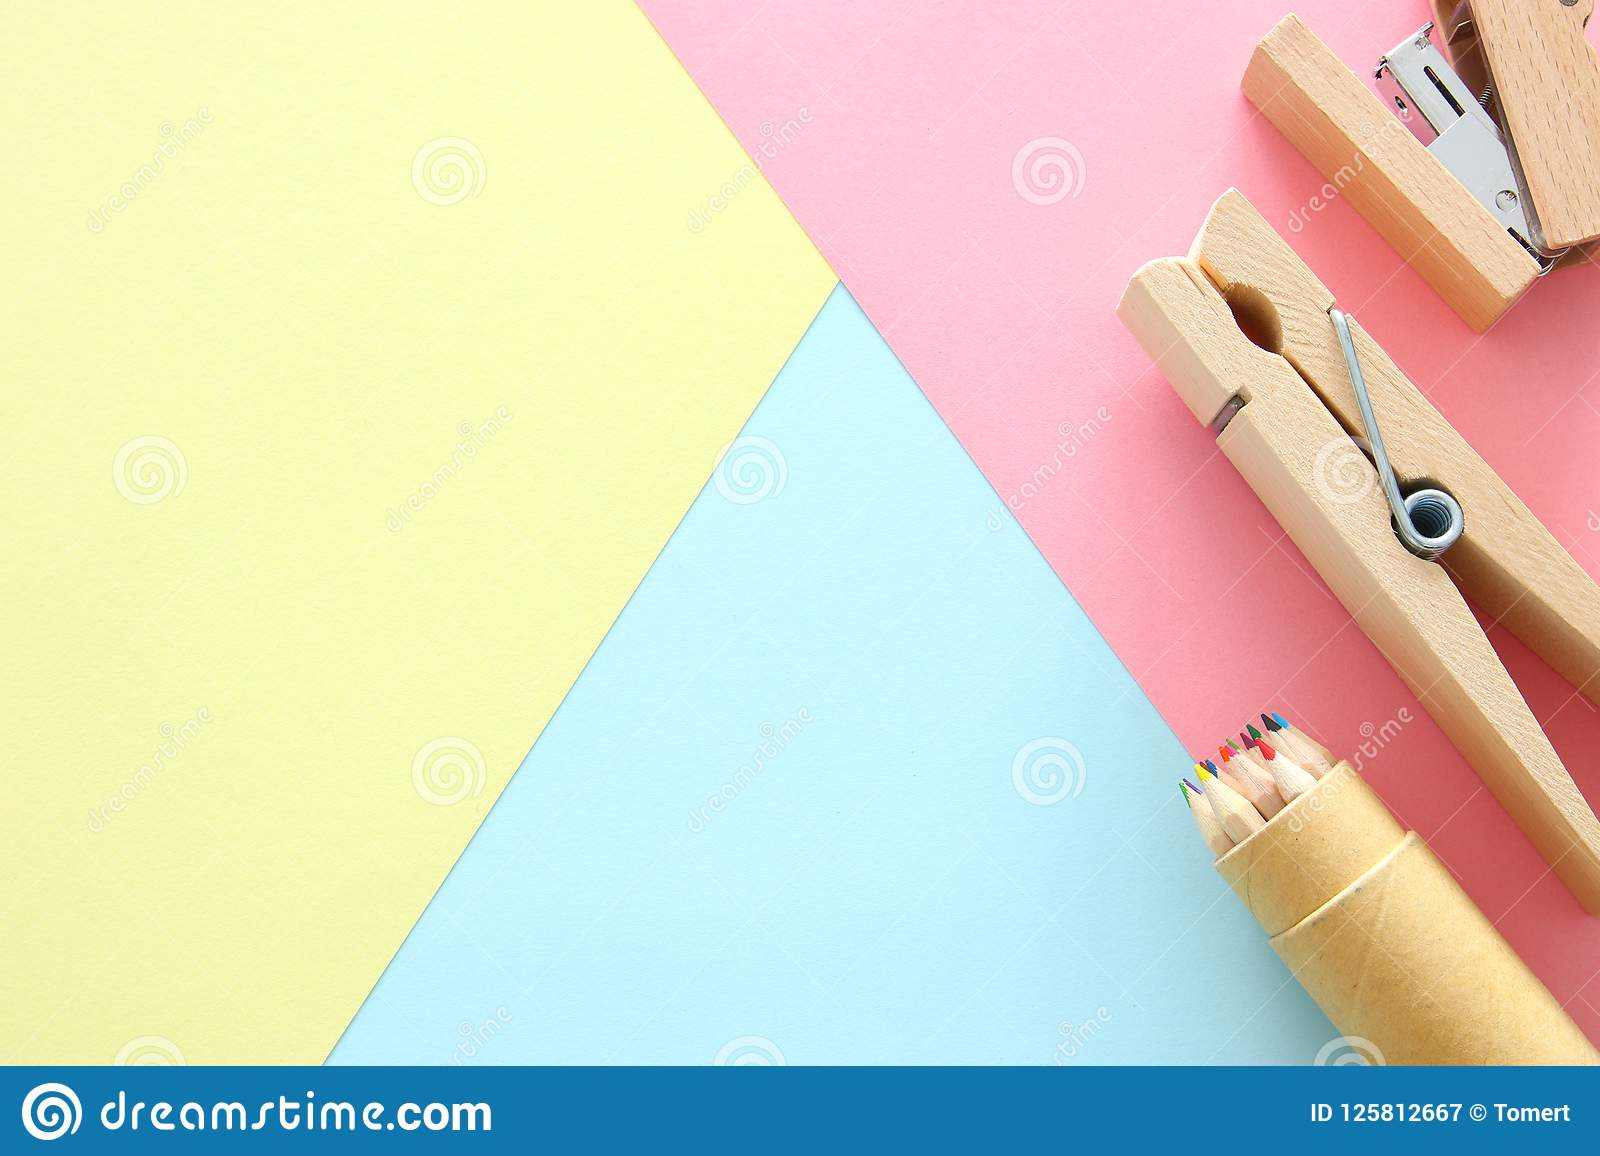 chool or office supplies, back to school over pastel background template.